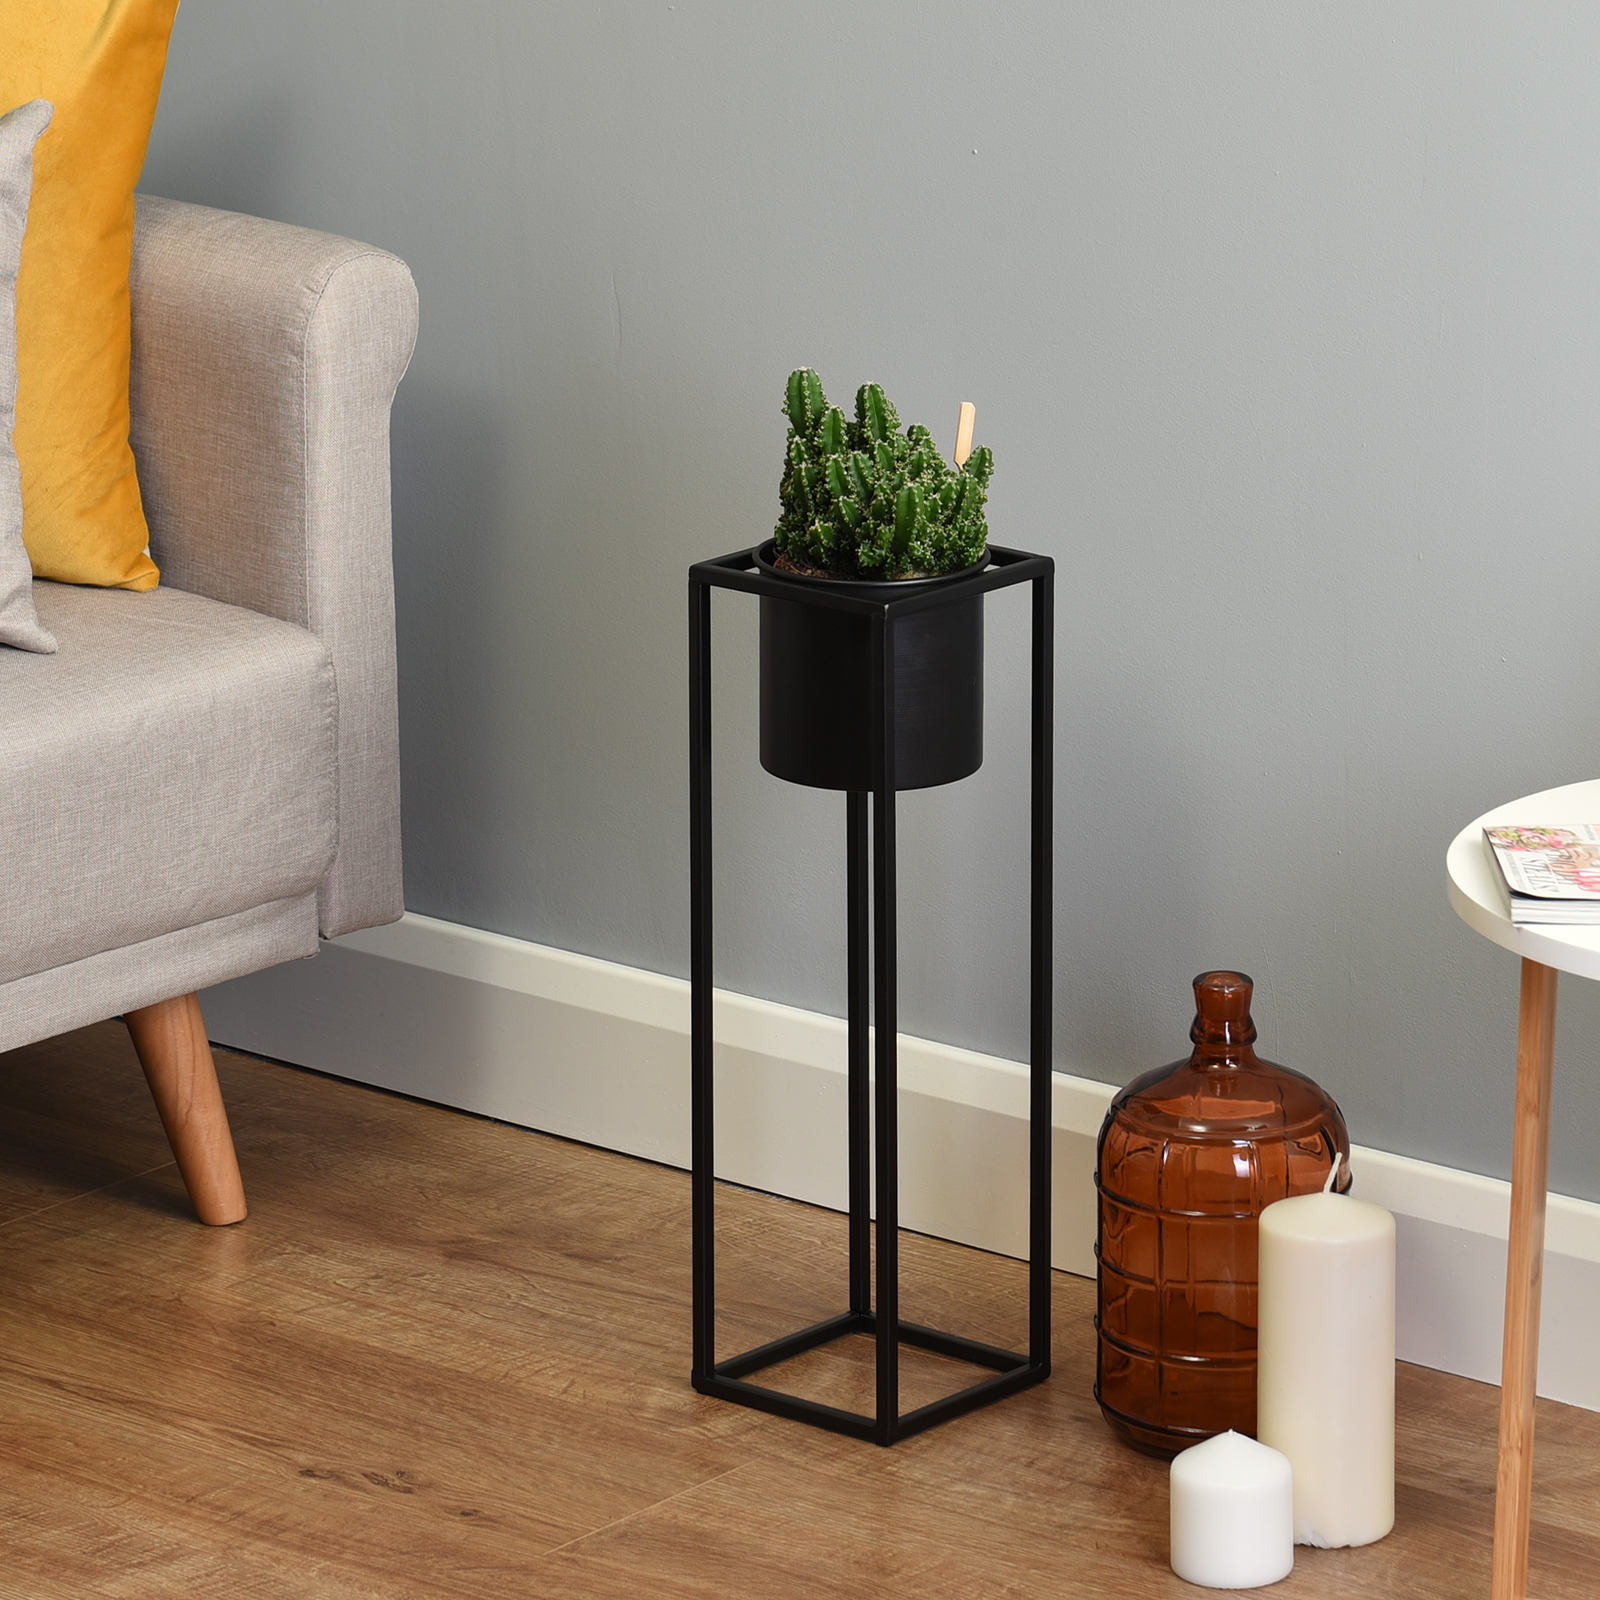 Hartleys-Small-Round-Freestanding-Black-Metal-Plant-Pot-Tall-Square-Floor-Stand thumbnail 10